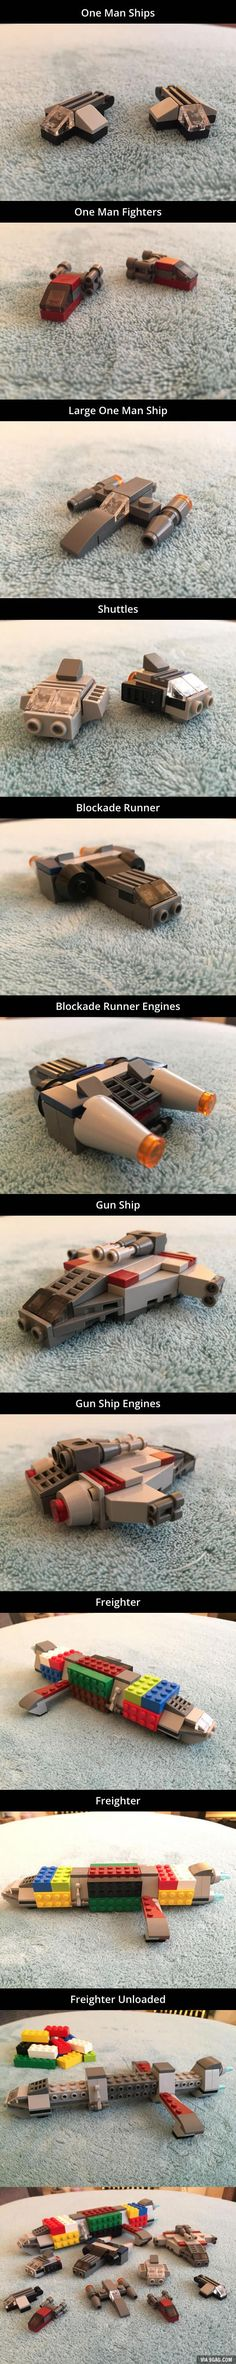 Lego Micro Space